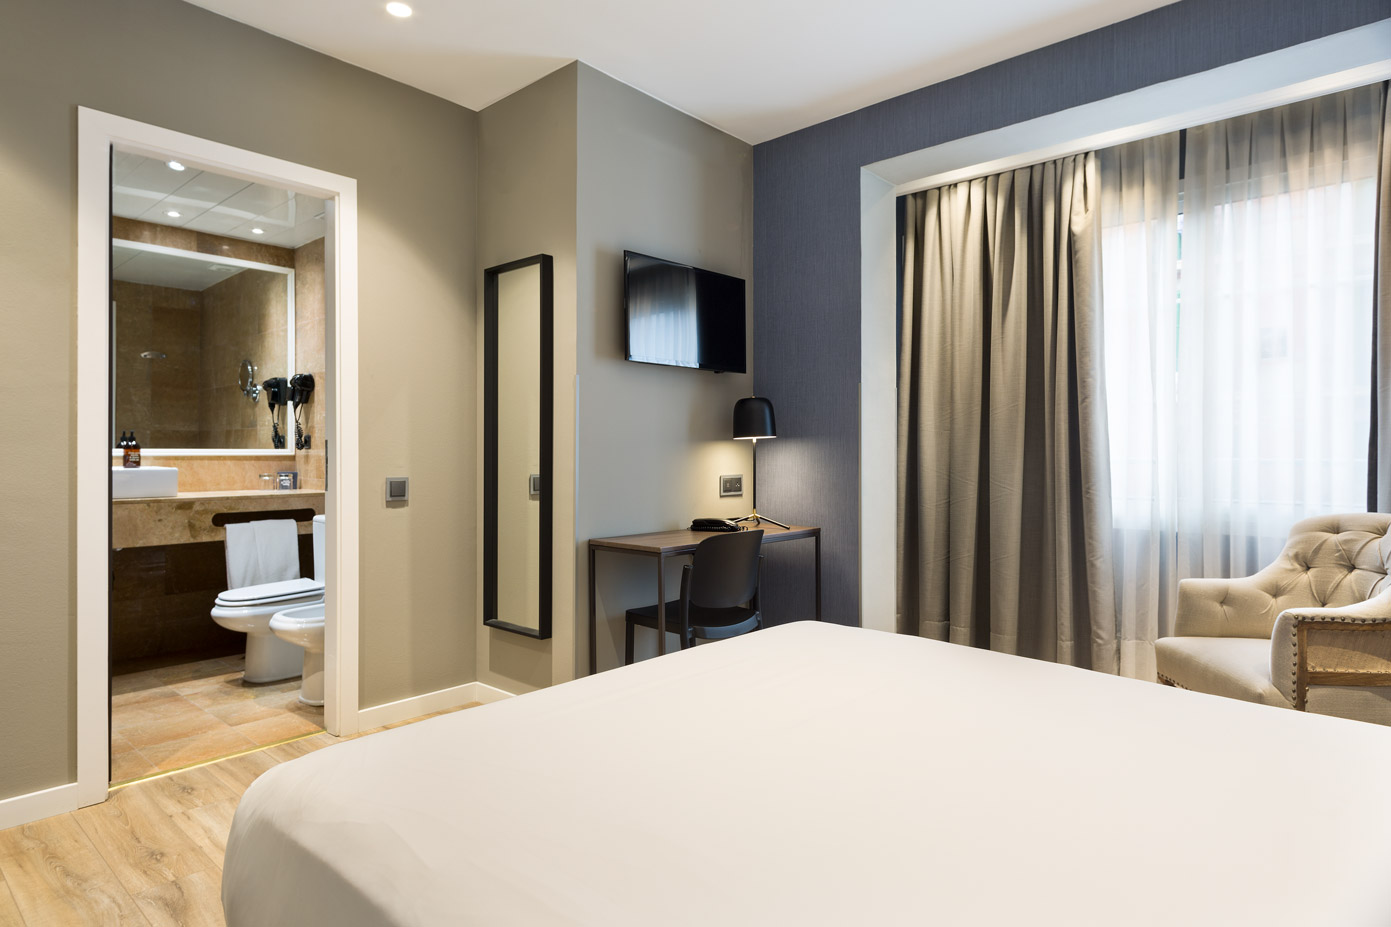 HOTEL_ACTA_SPLENDID_DOBLE_ESTANDAR_07